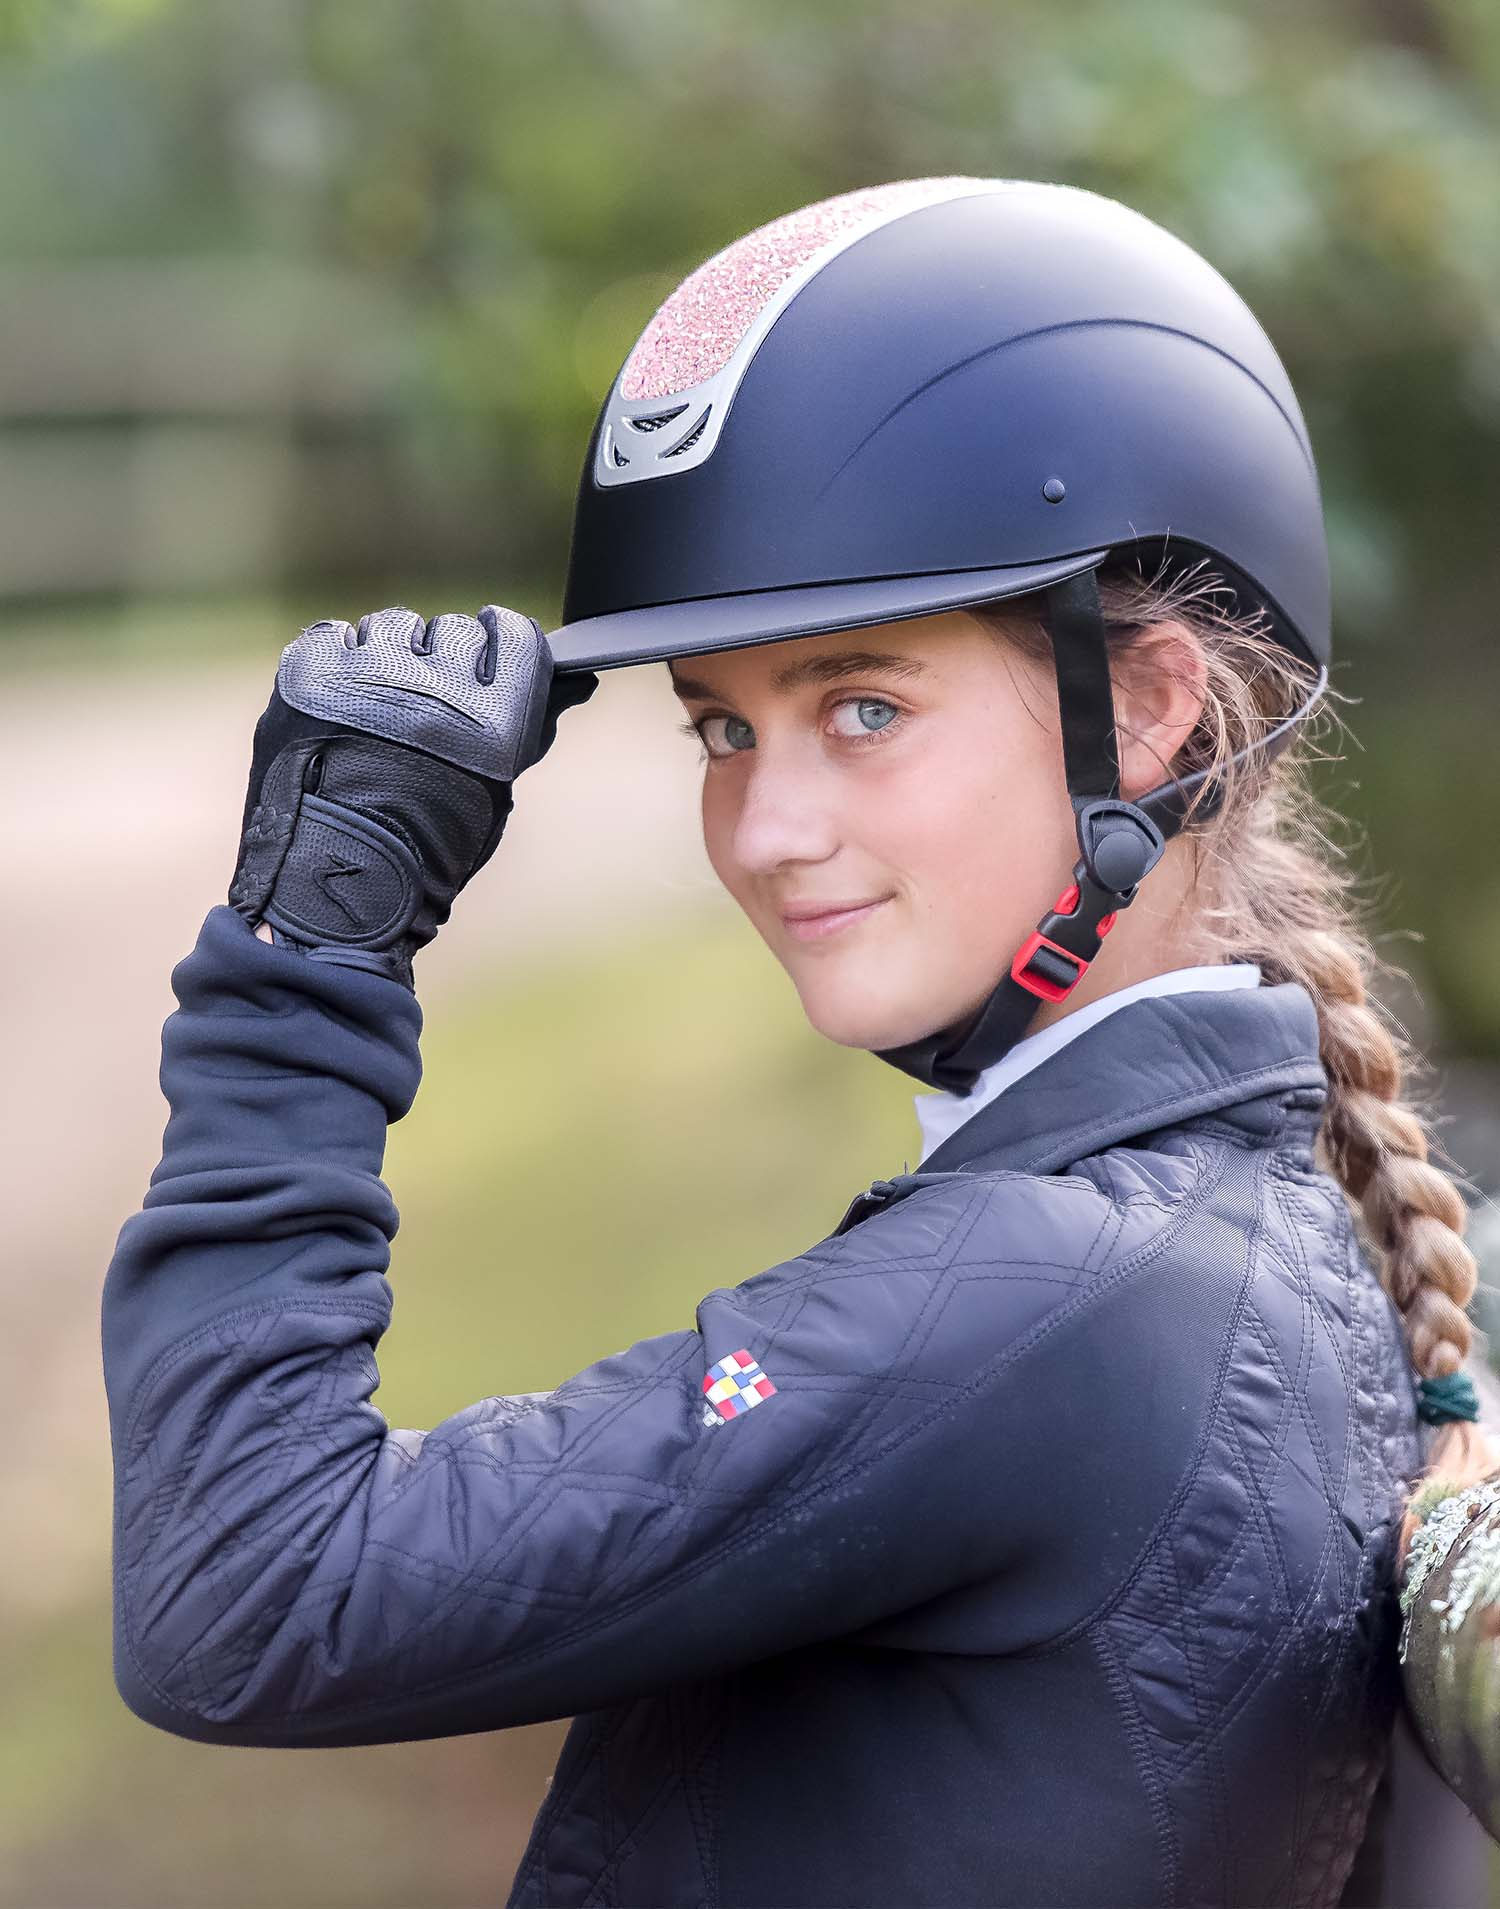 High quality high impact helmet, ABS shell with EPS foam, wide visor, glitter detail, certified horse riding helmet with safety standards VG1 01.040 2014-12, great ventilation, removable liner.